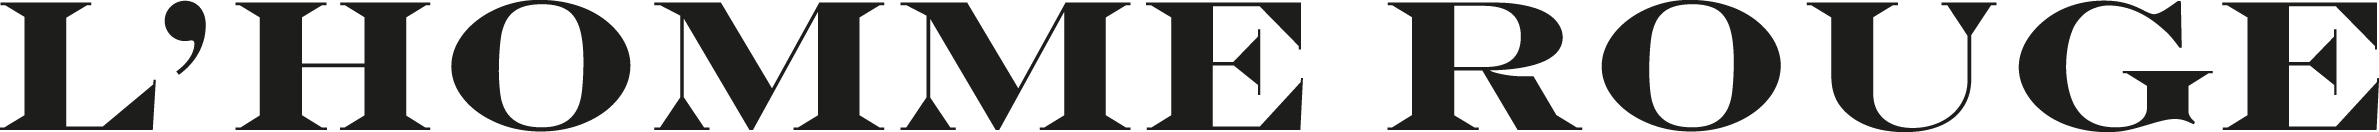 Lhommerouge_logo.png